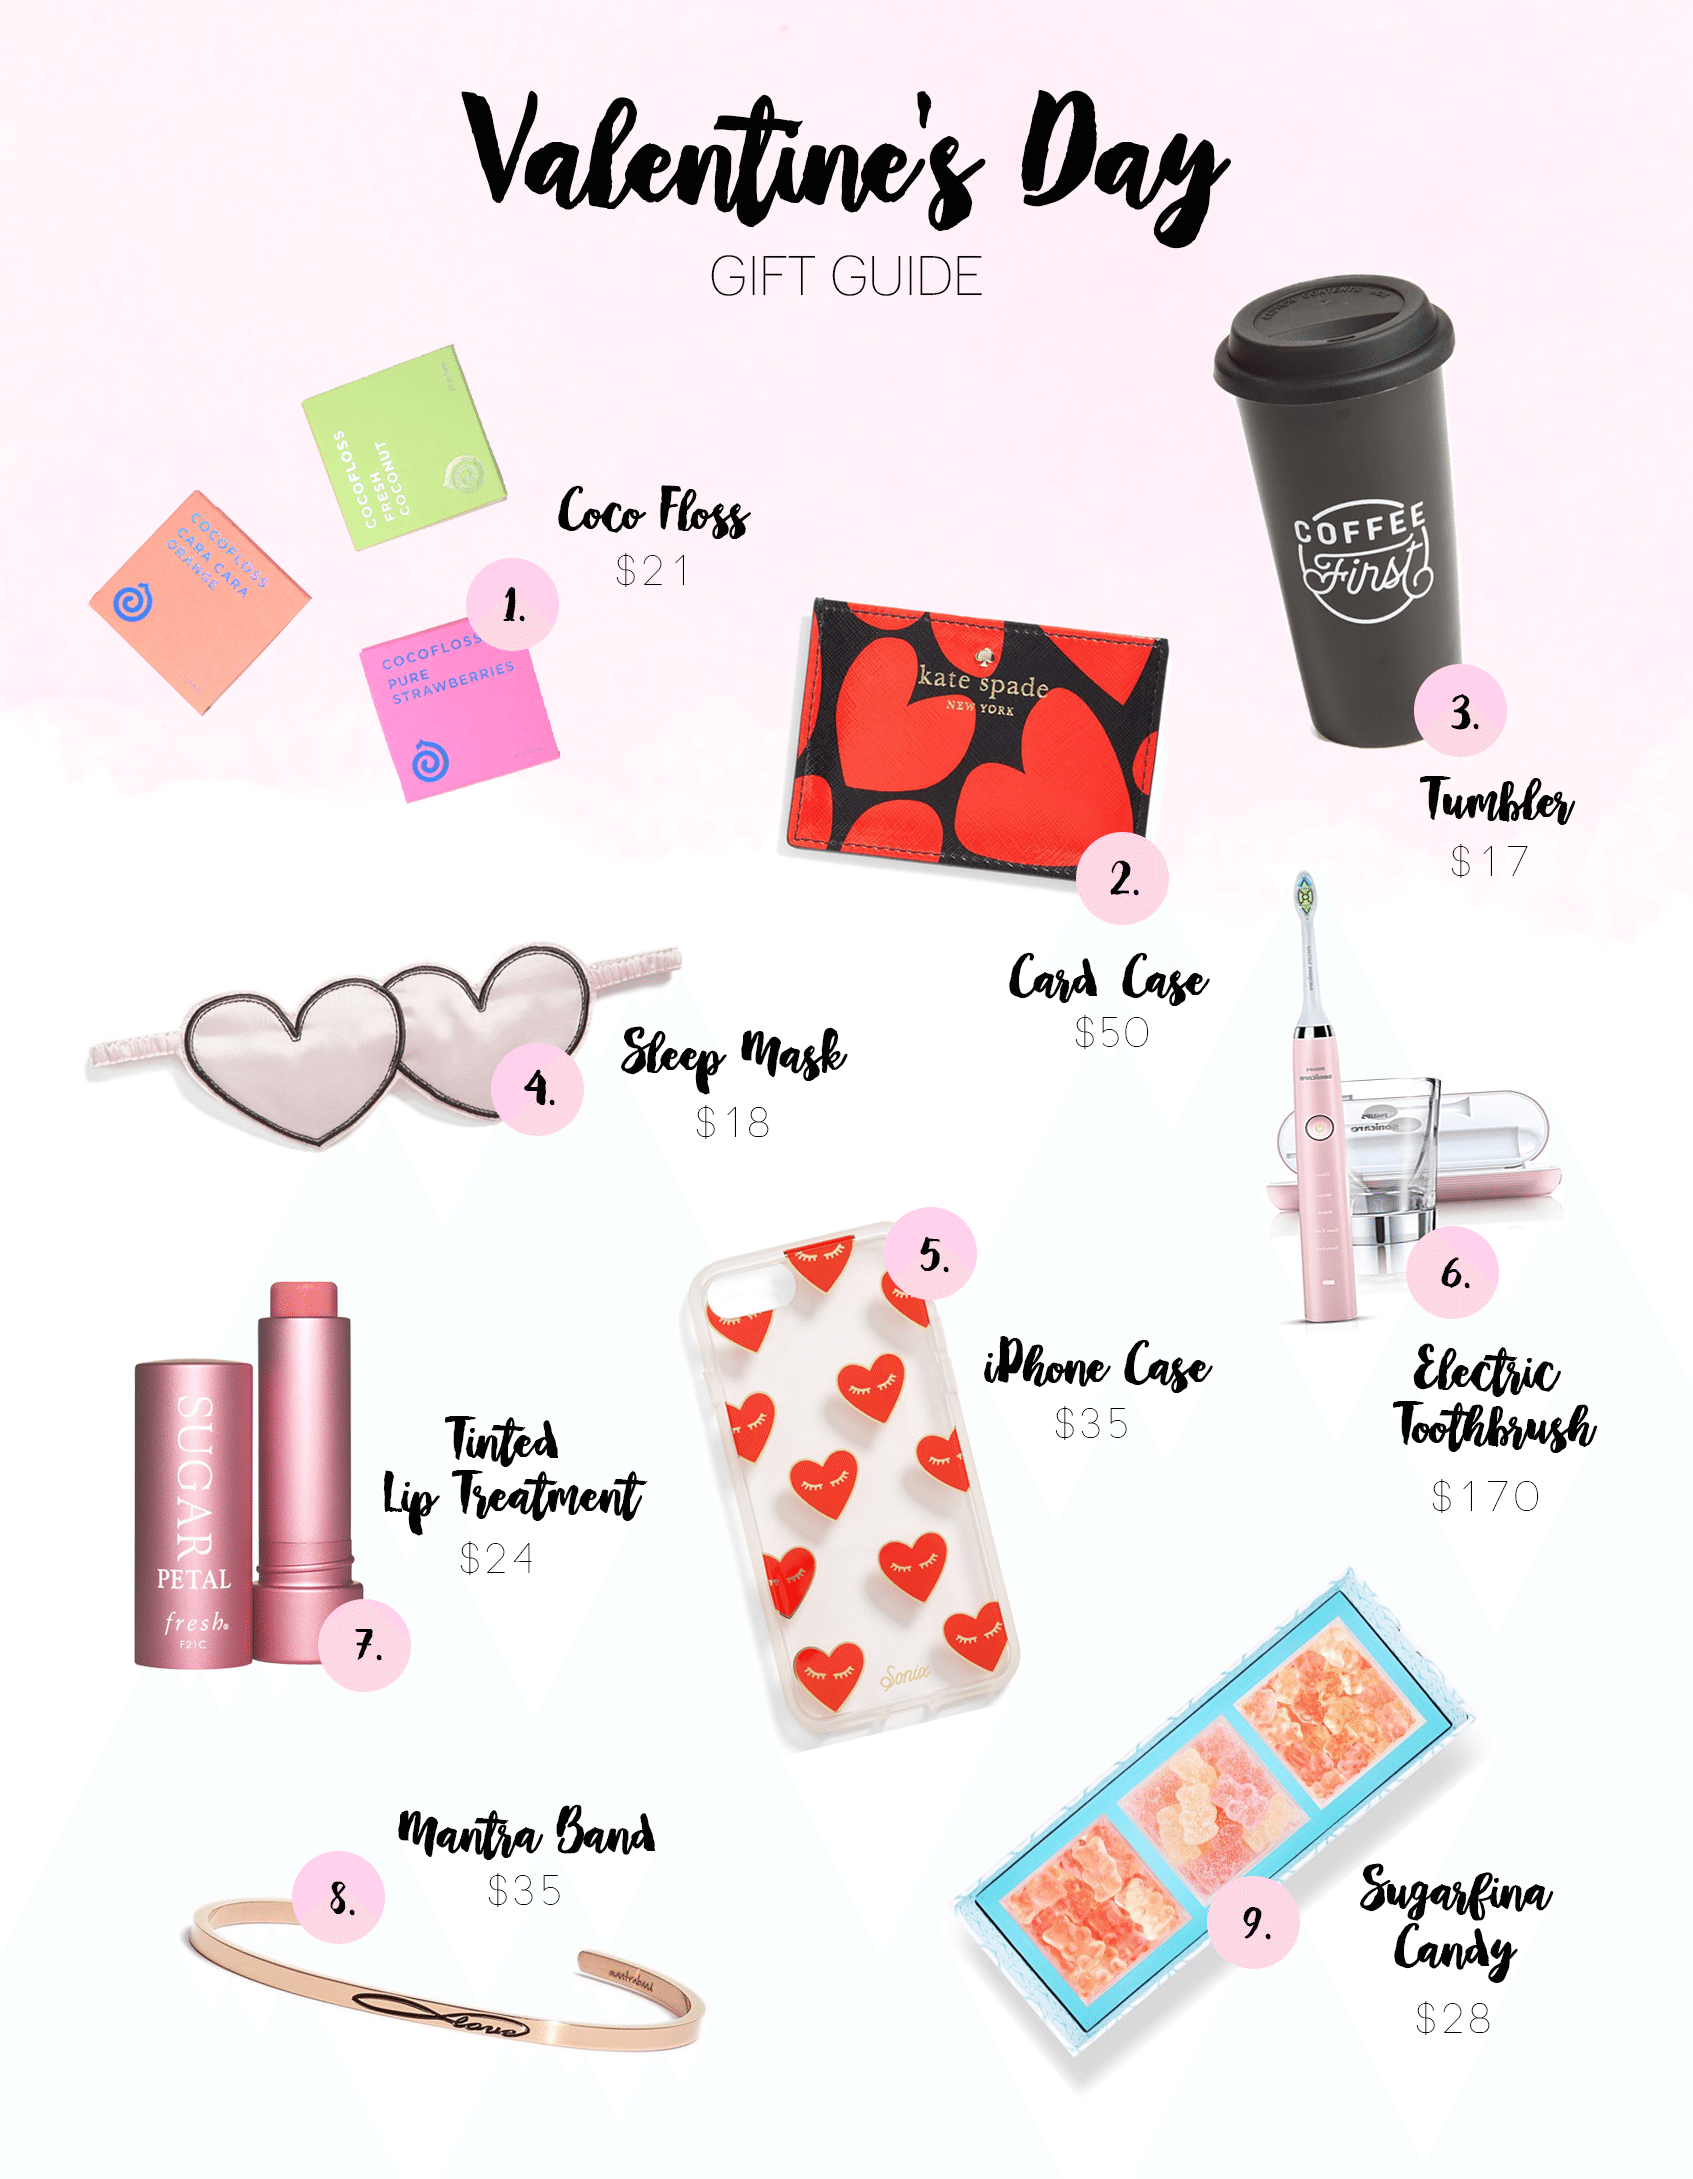 dentalsoiree//valentines day gifts